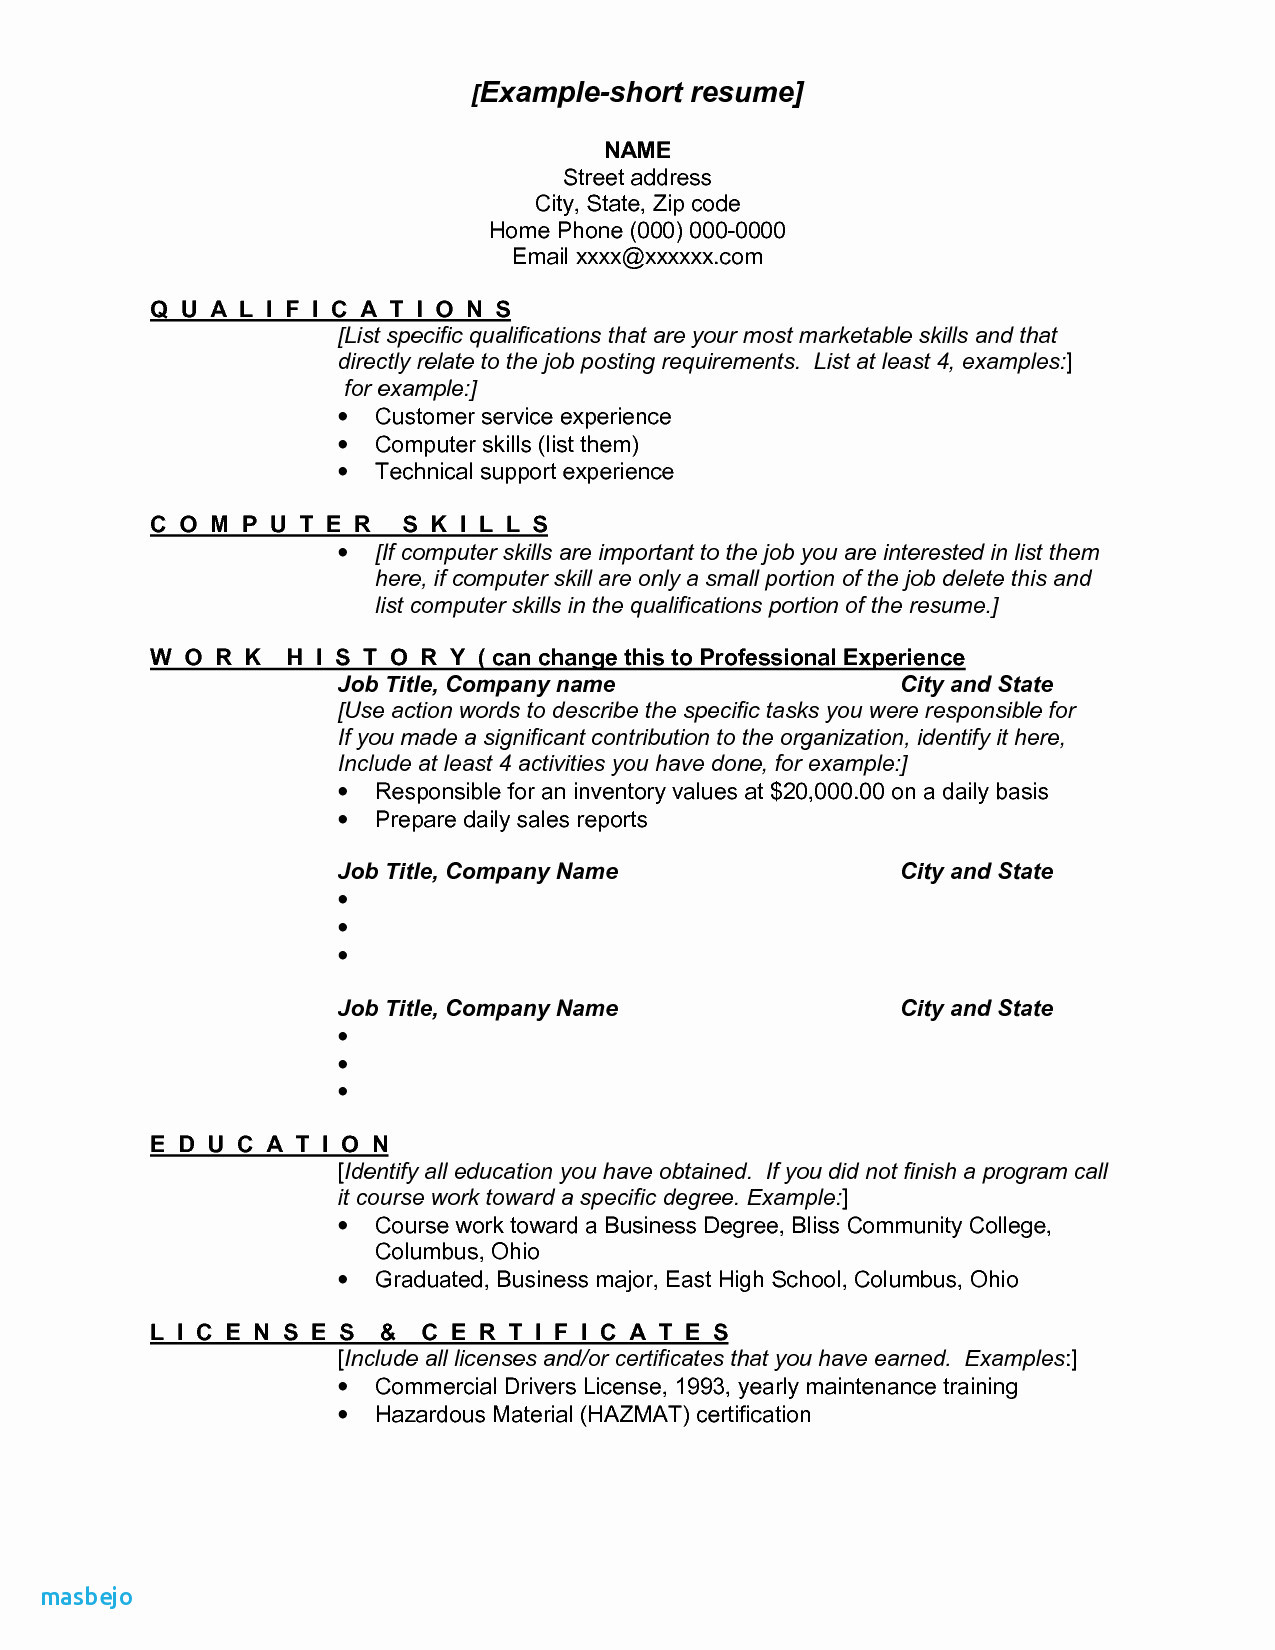 Describe Your Computer Skills - Puter Skills to Put Resume Awesome Resume Puter Skills